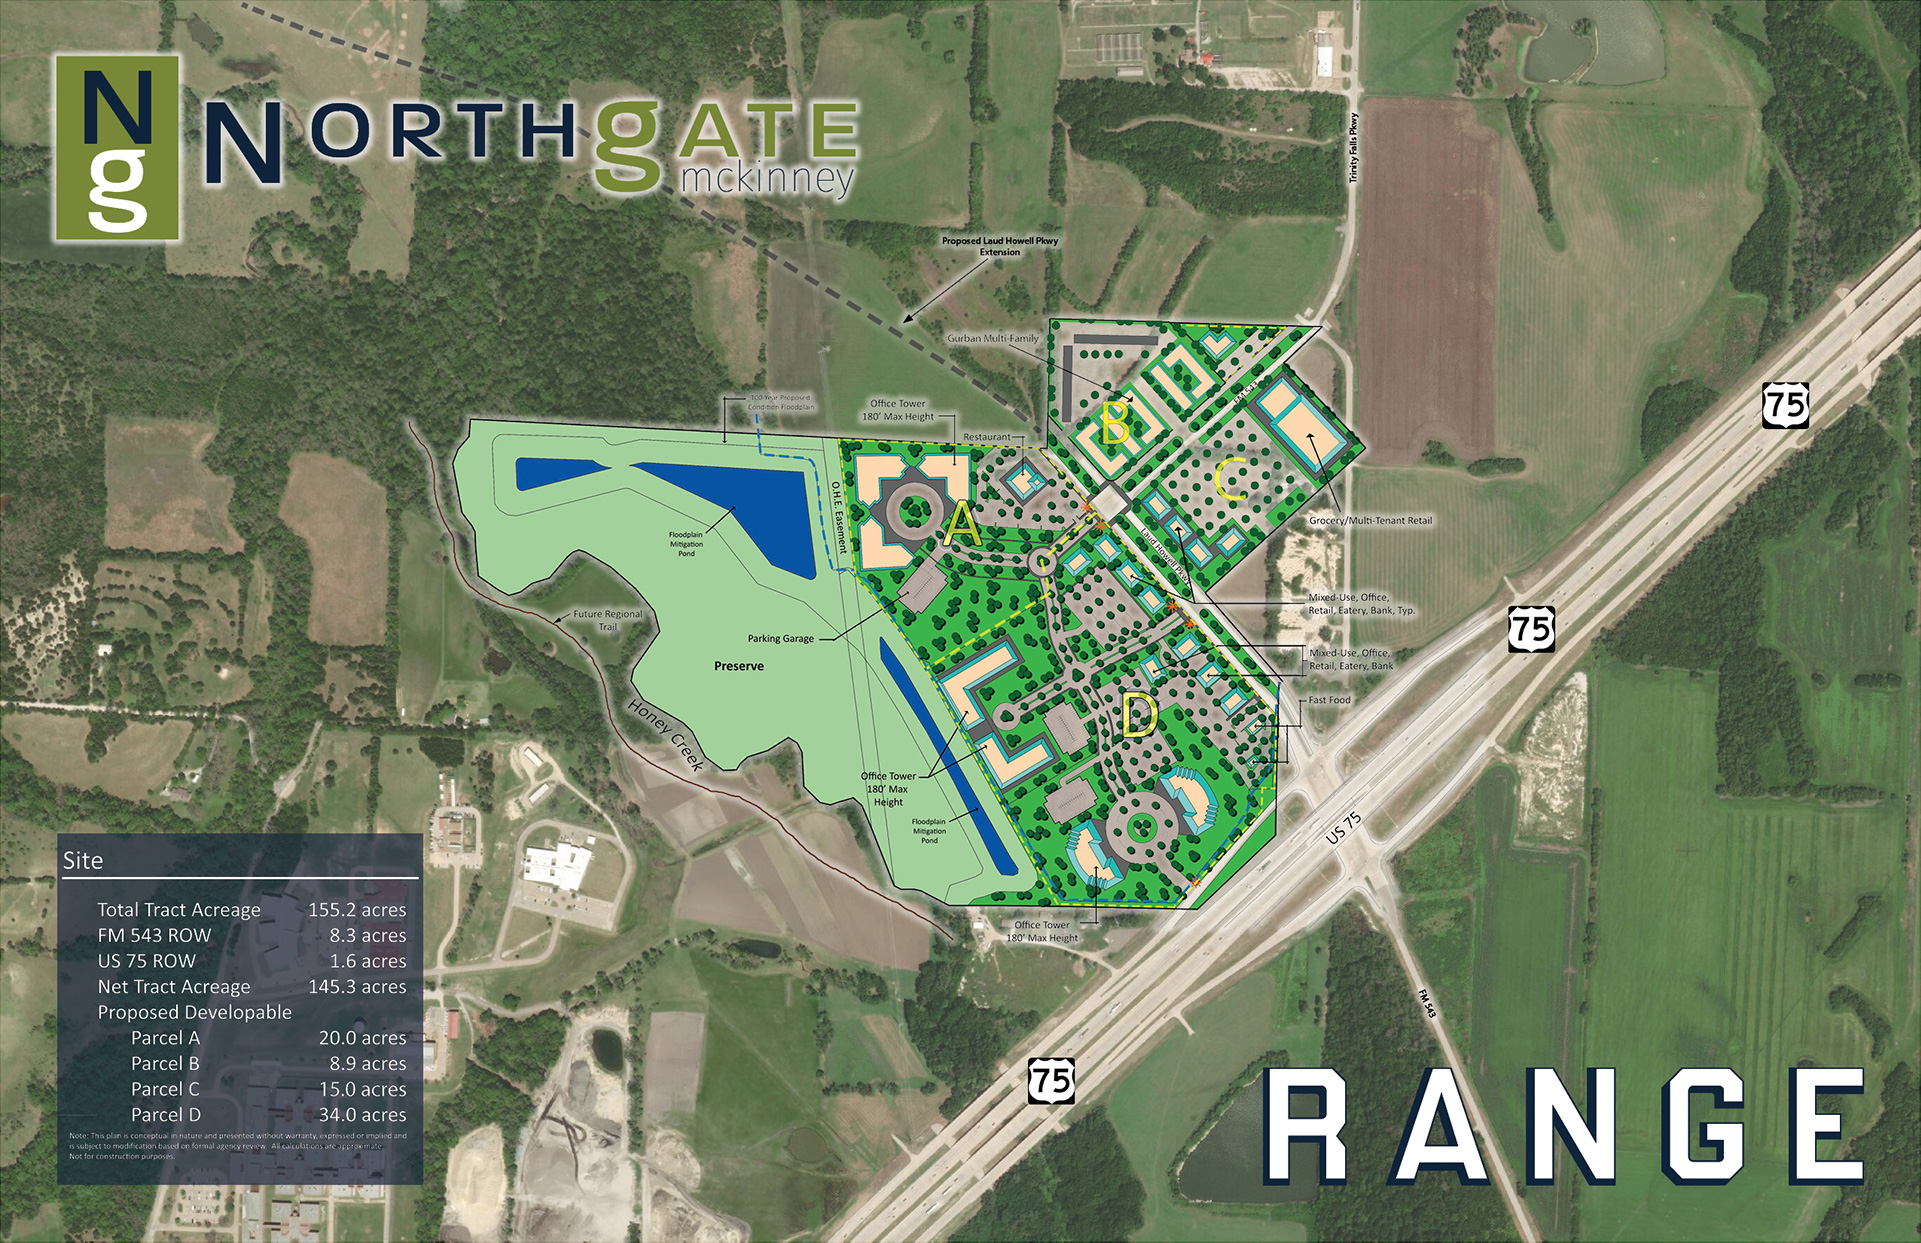 Northgate McKinney - Land for Sale DFW